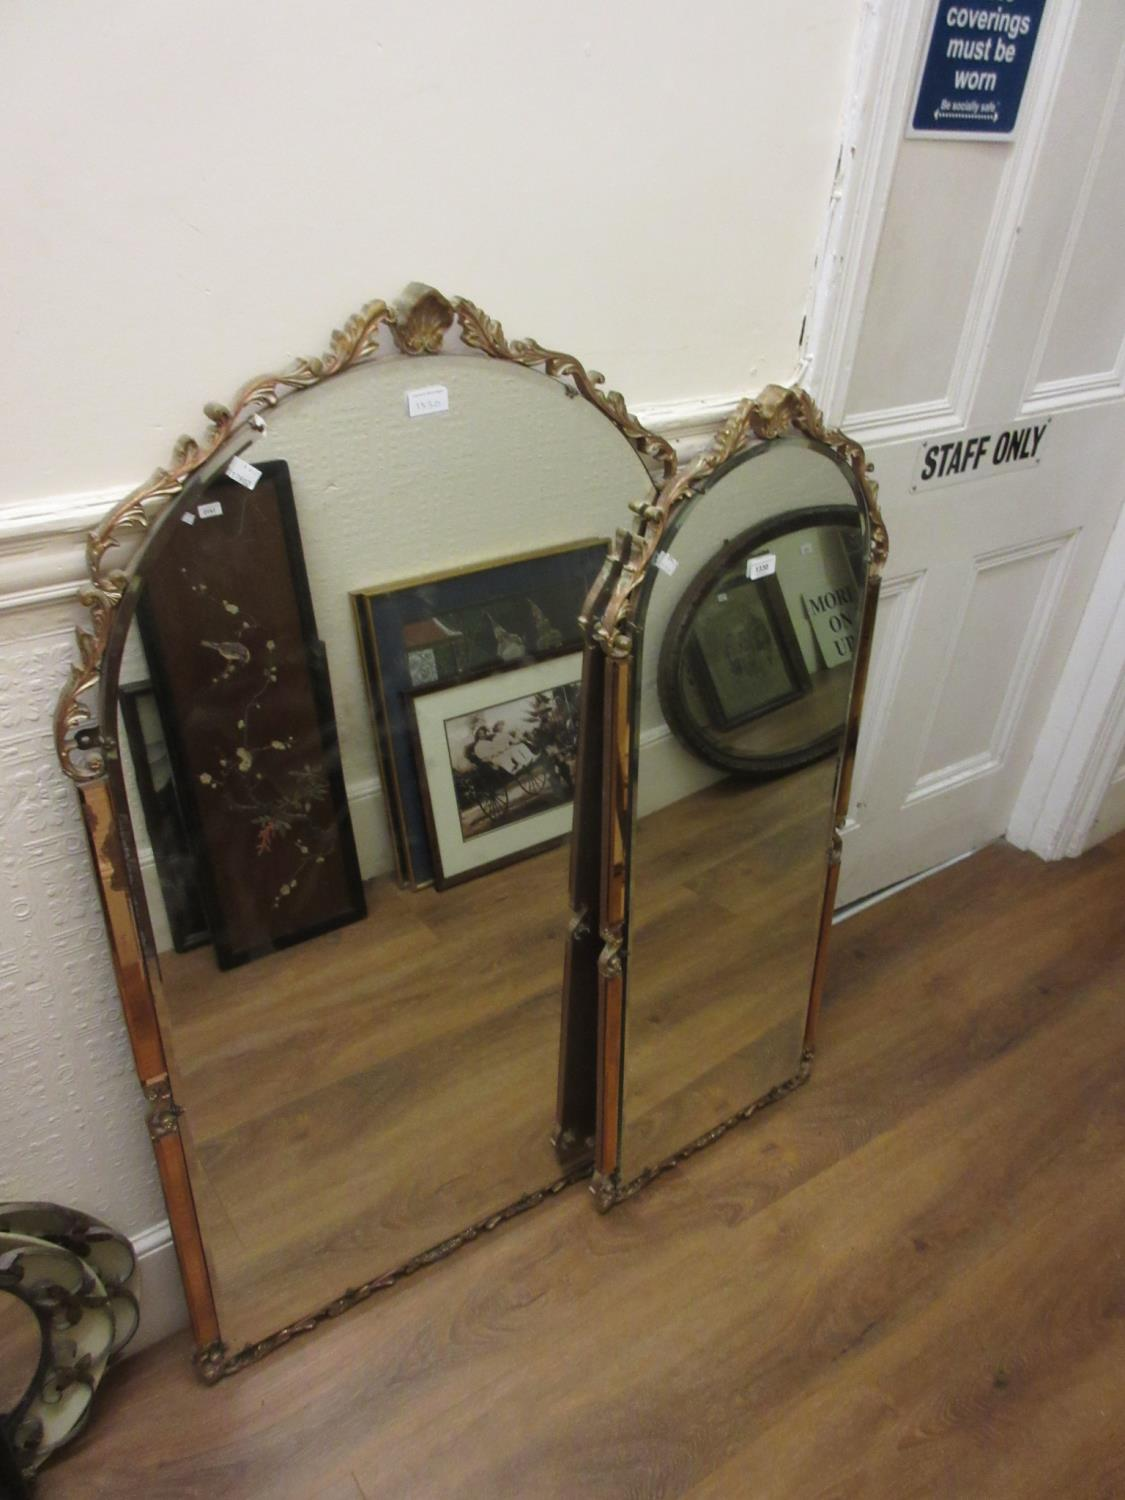 Two reproduction Venetian style arched top wall mirrors, the largest 49ins x 27ins